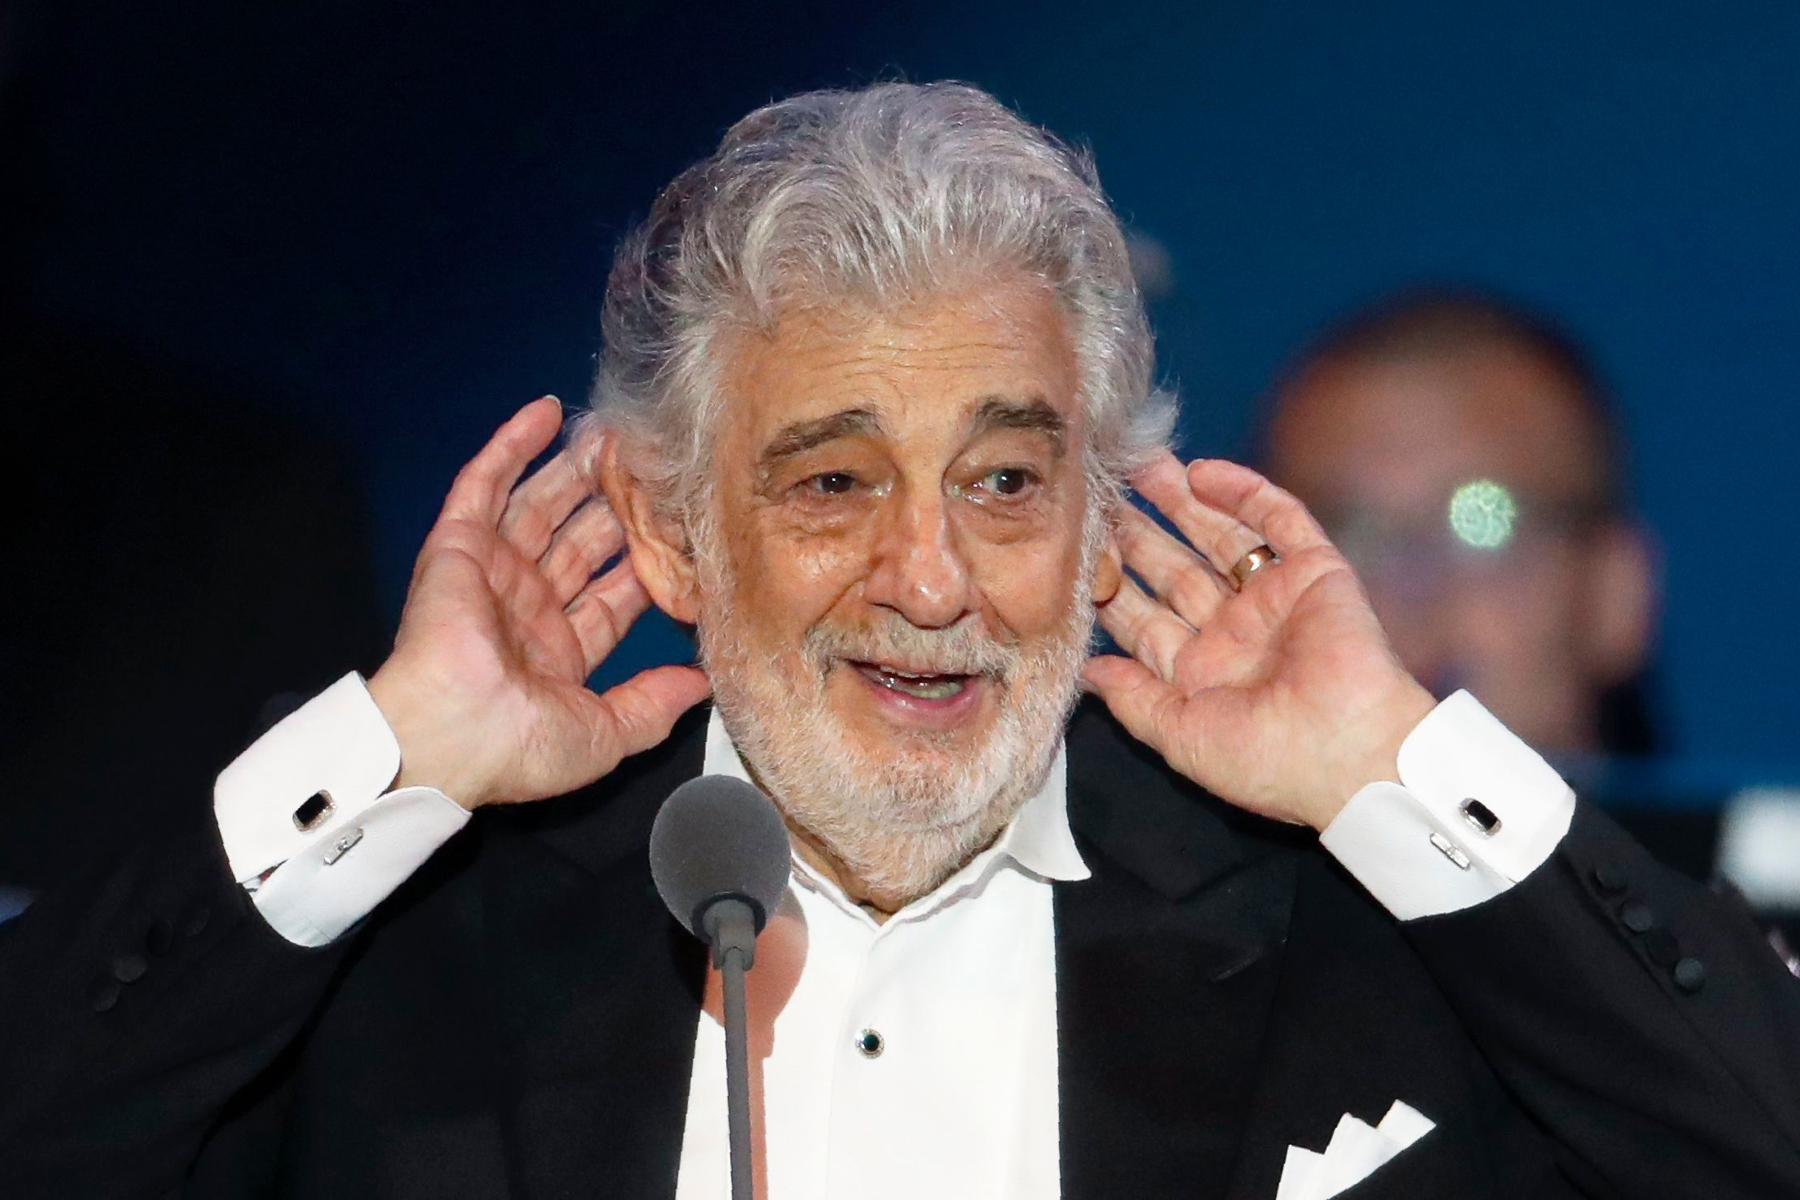 48 Hours After Apologizing, Placido Domingo Rescinds His Statement